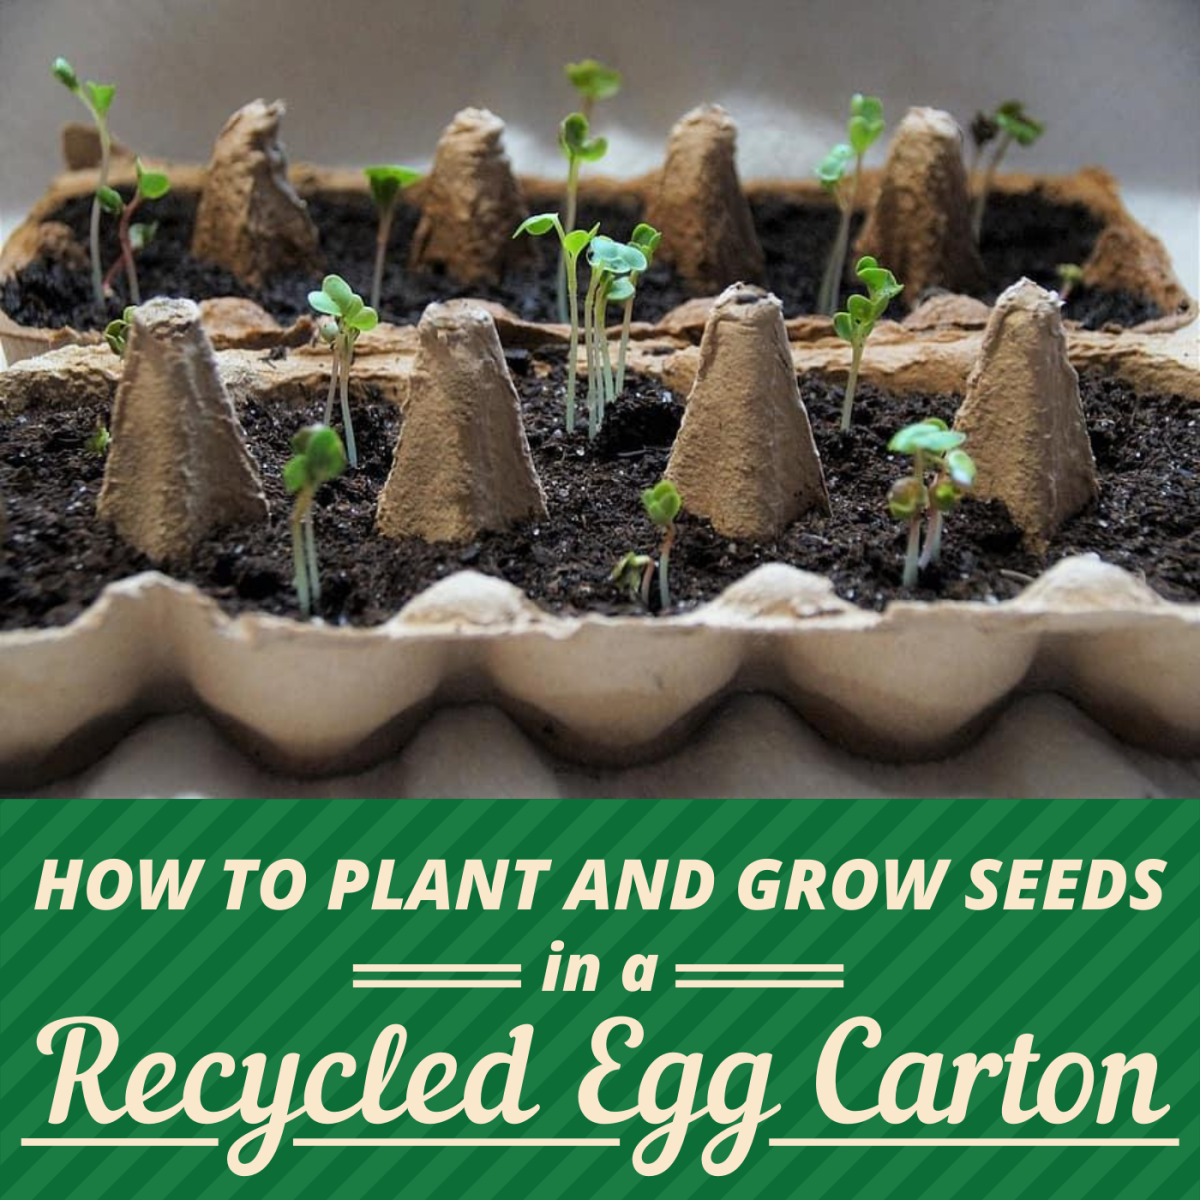 How to Start Seeds in an Egg Carton (and Transplant the Seedlings)